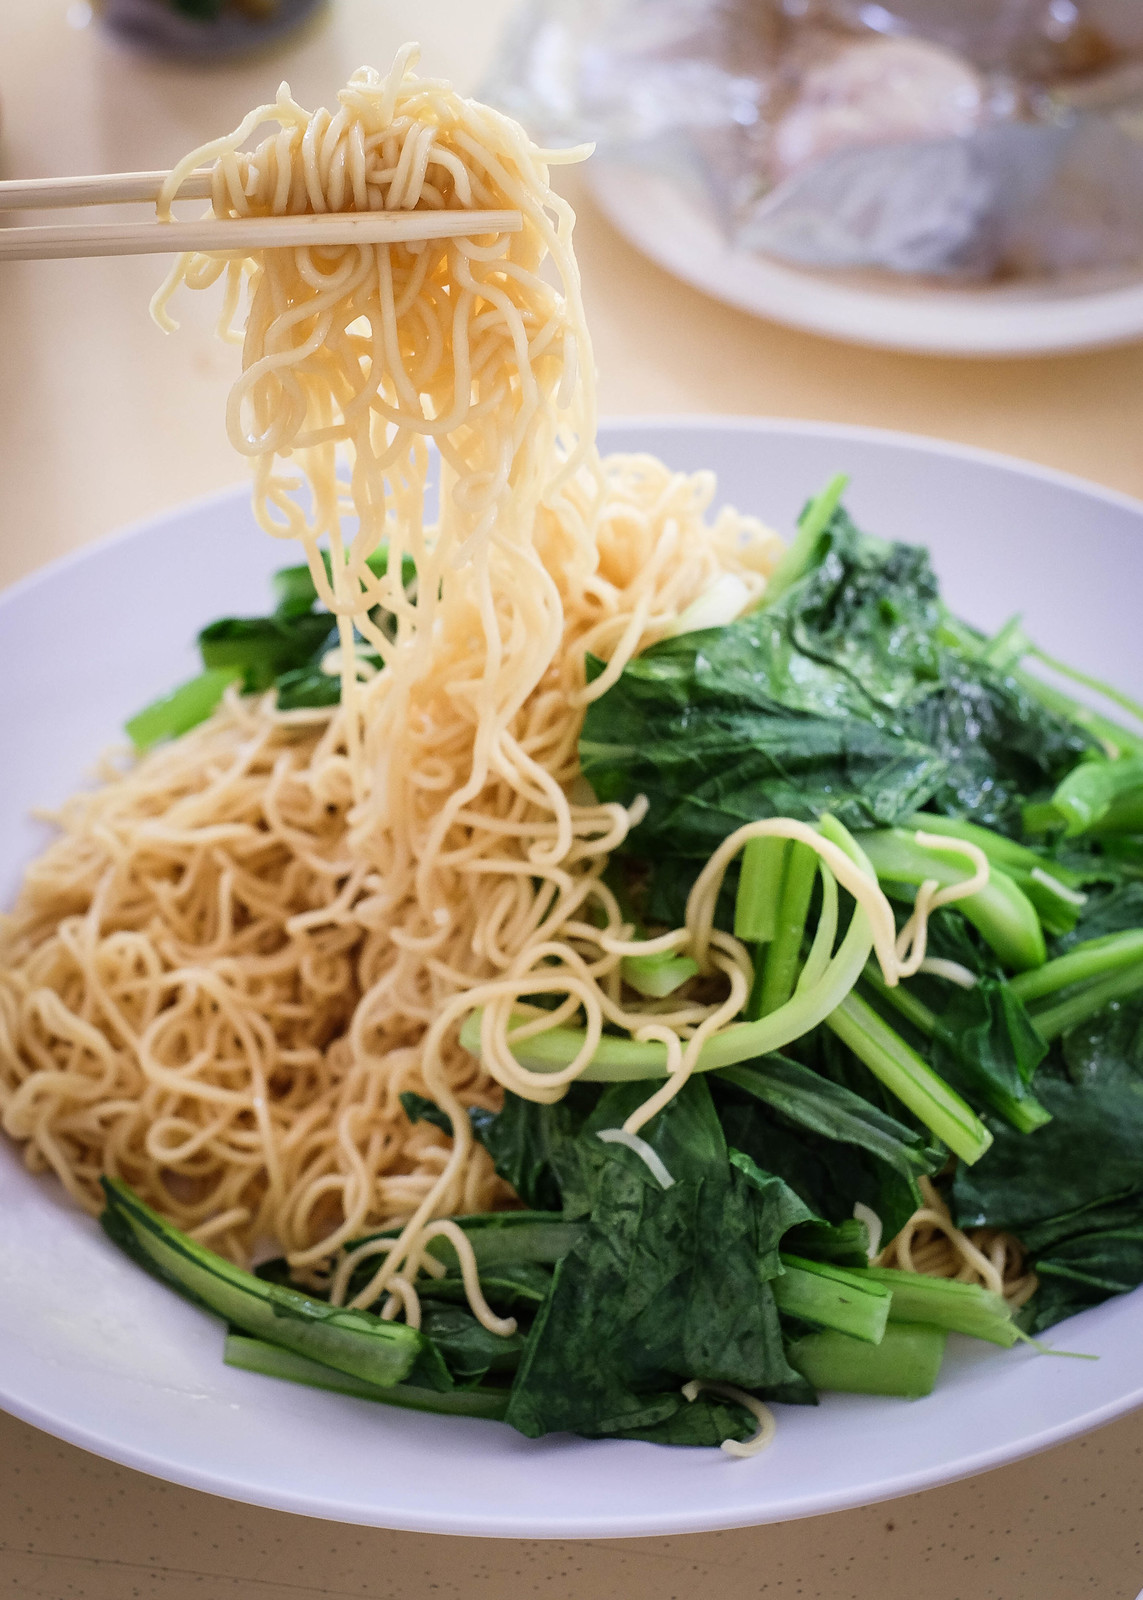 A plate of noodle and vegetable